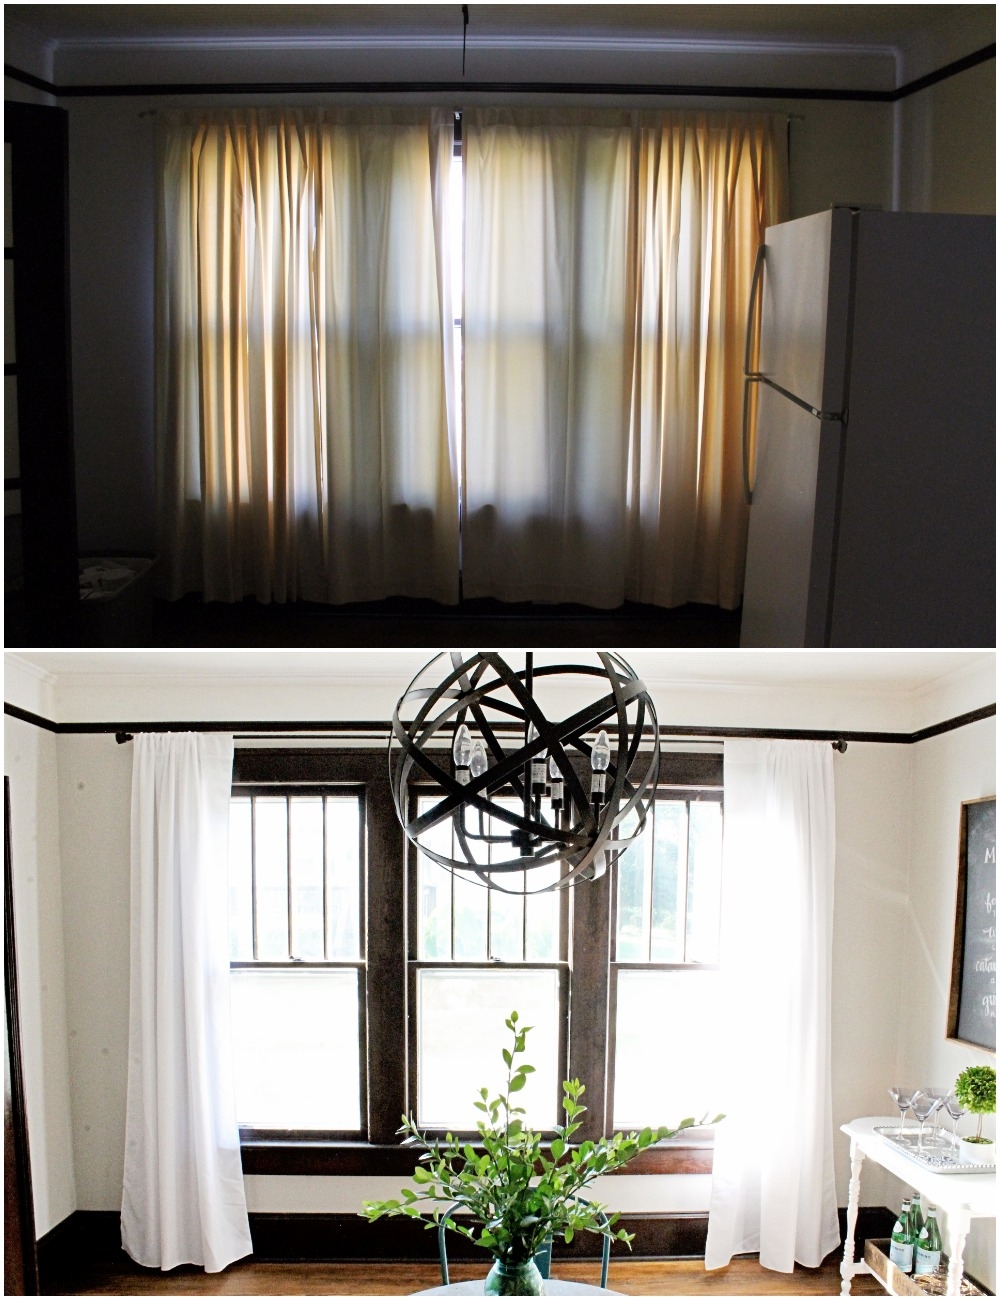 House Flipping Before and Afters - Dining Room Budget Renovation Remodel, Wood Trim Paint Colors - Sherwin Williams Repose Gray (1).jpg